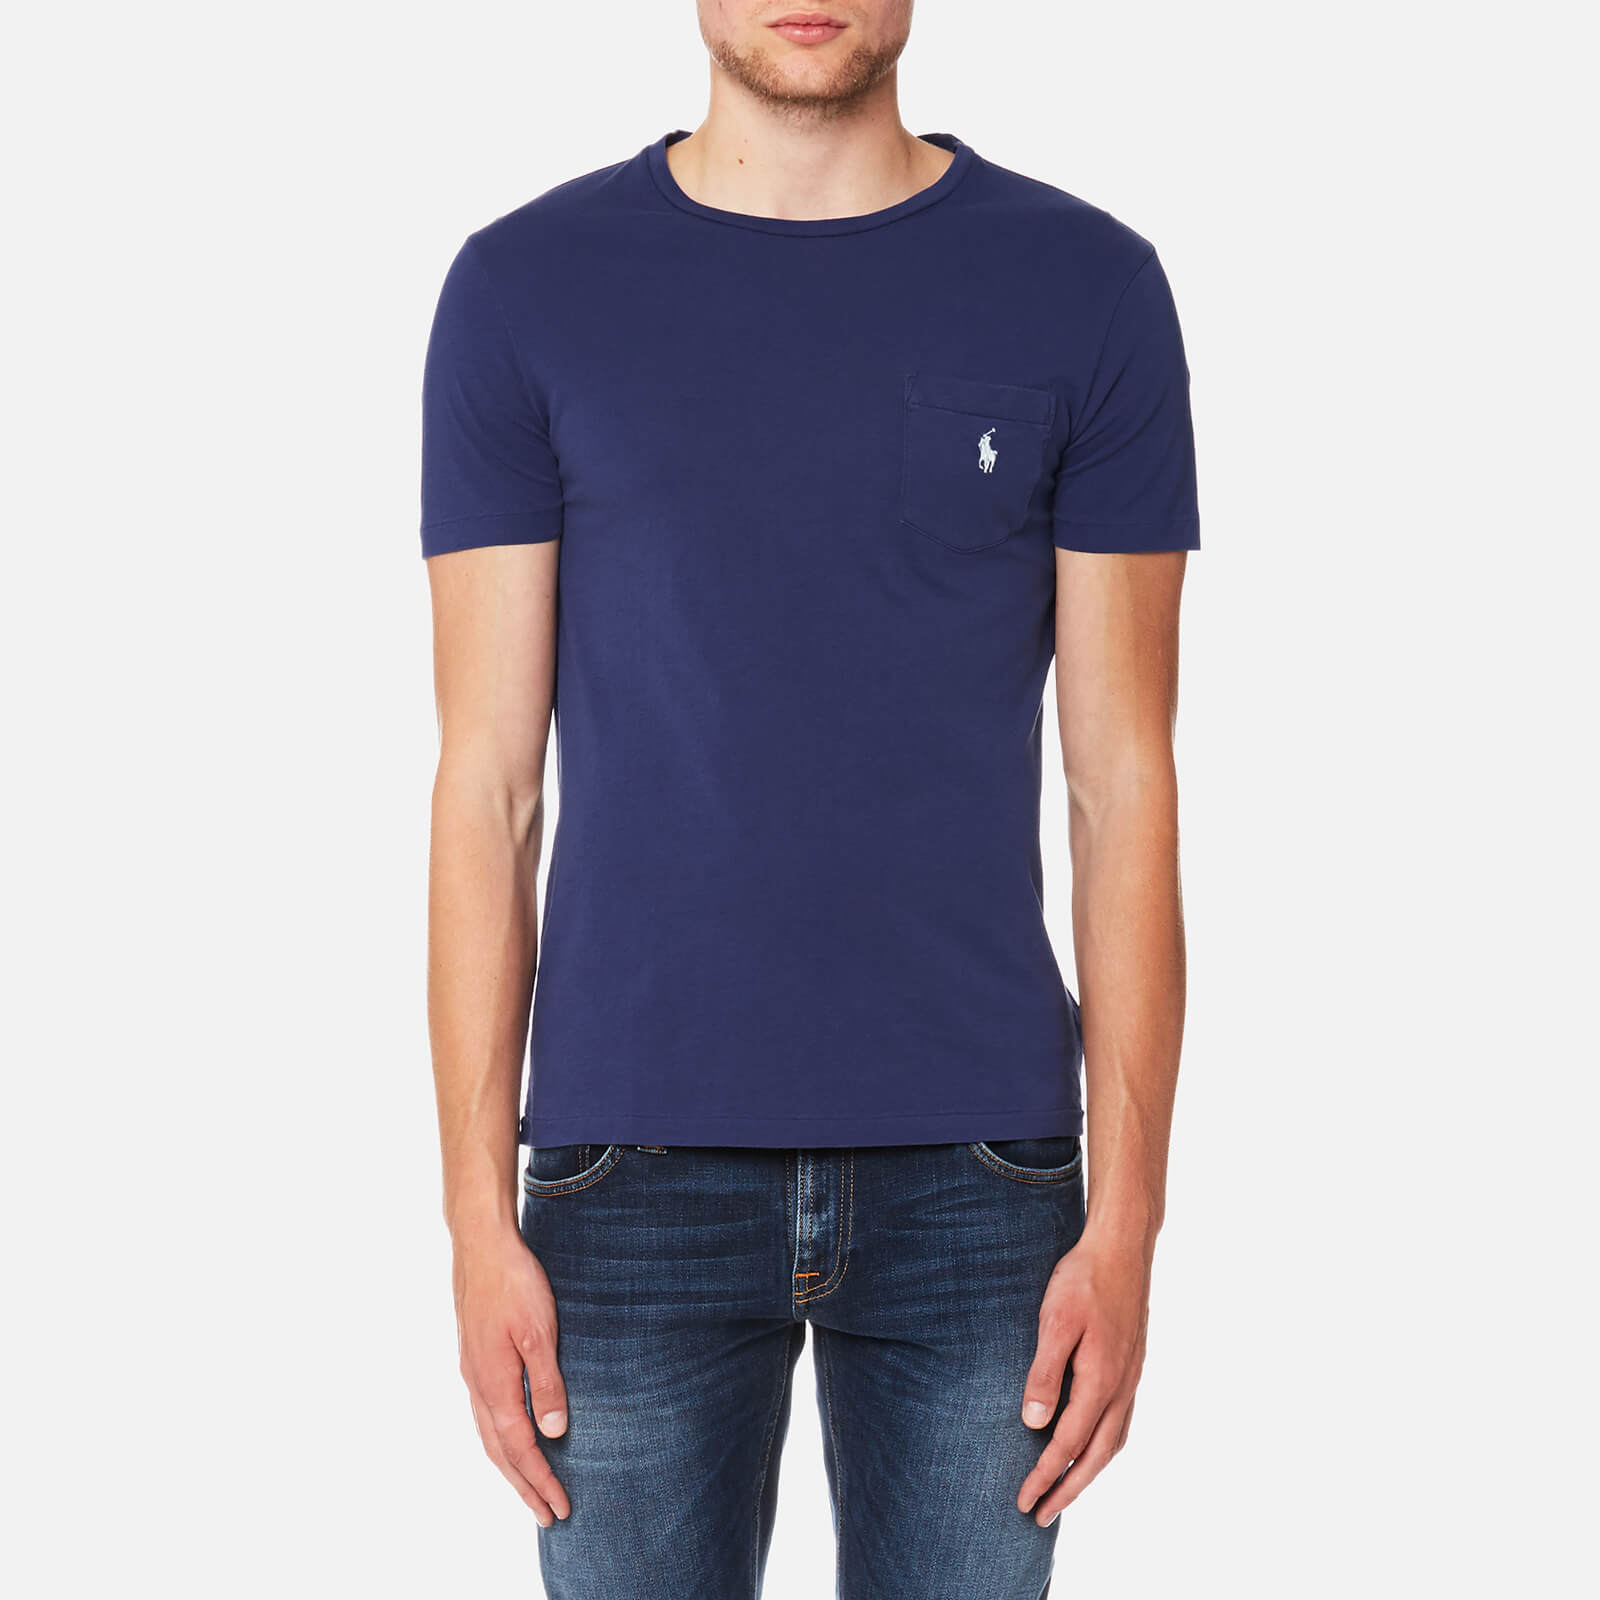 8469be7fb Polo Ralph Lauren Men s Custom Fit T-Shirt - Yale Blue - Free UK Delivery  over £50